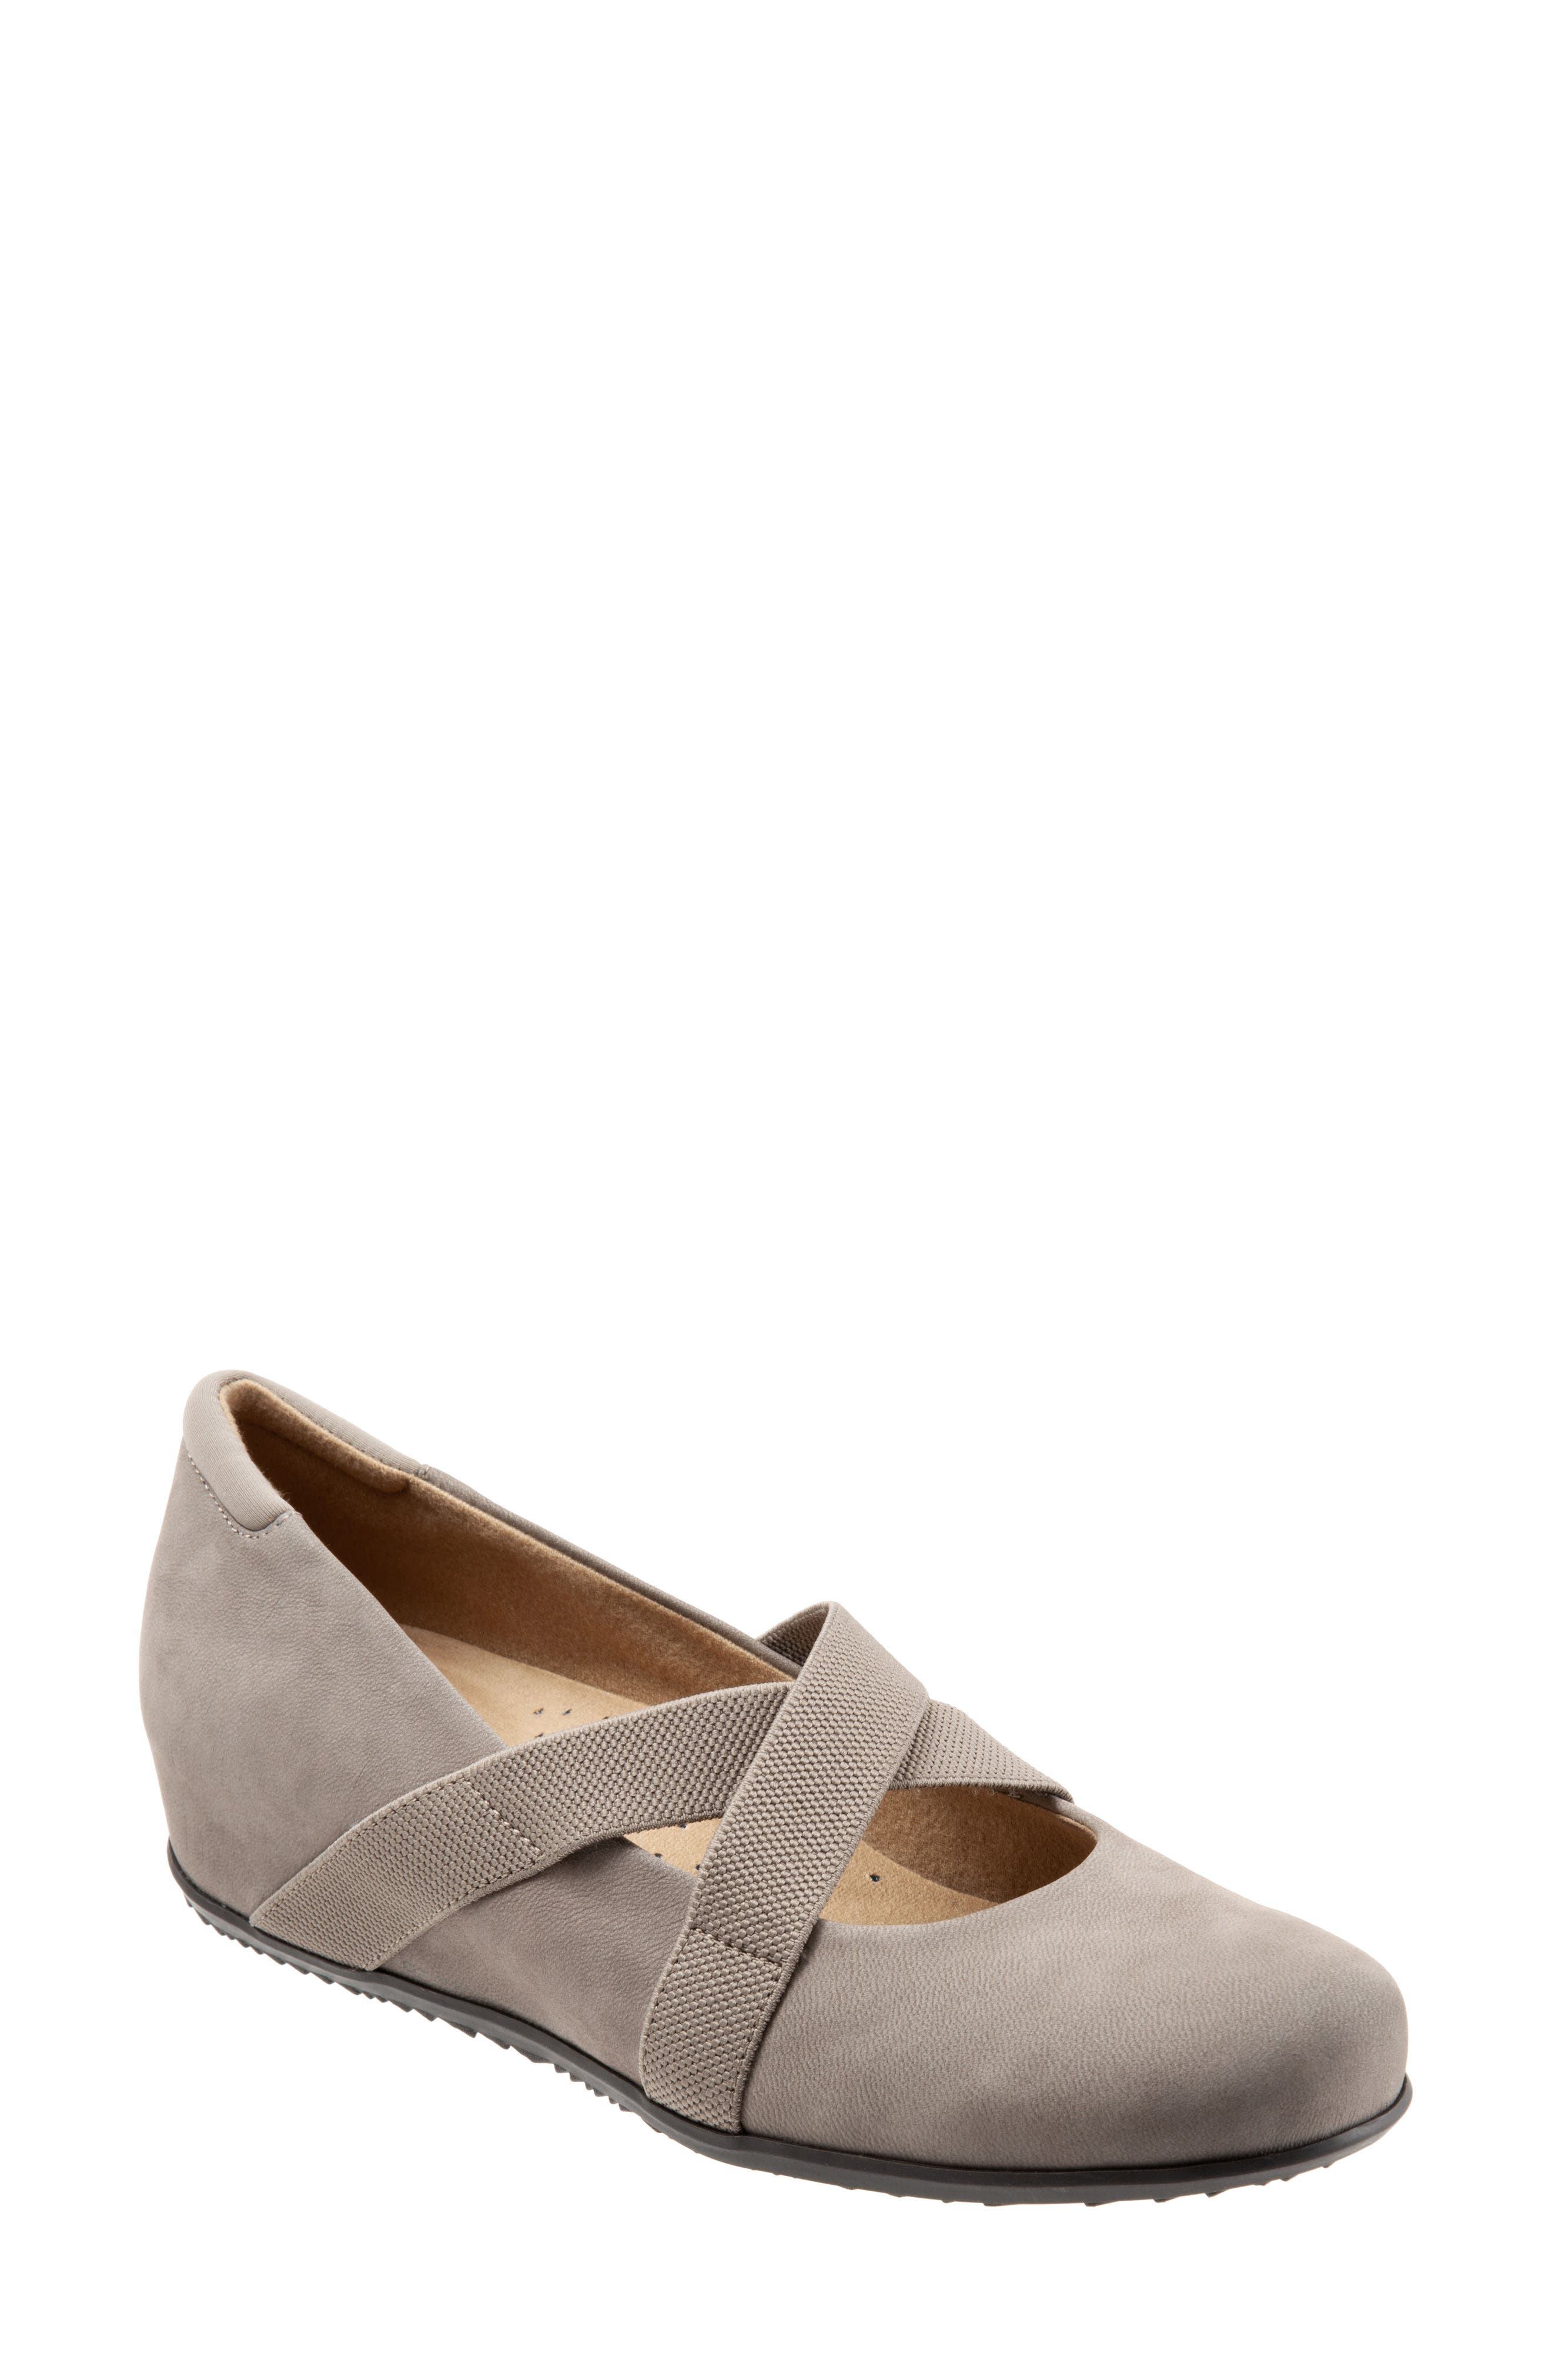 SOFTWALK<SUP>®</SUP>, Waverly Mary Jane Wedge, Main thumbnail 1, color, TAUPE LEATHER